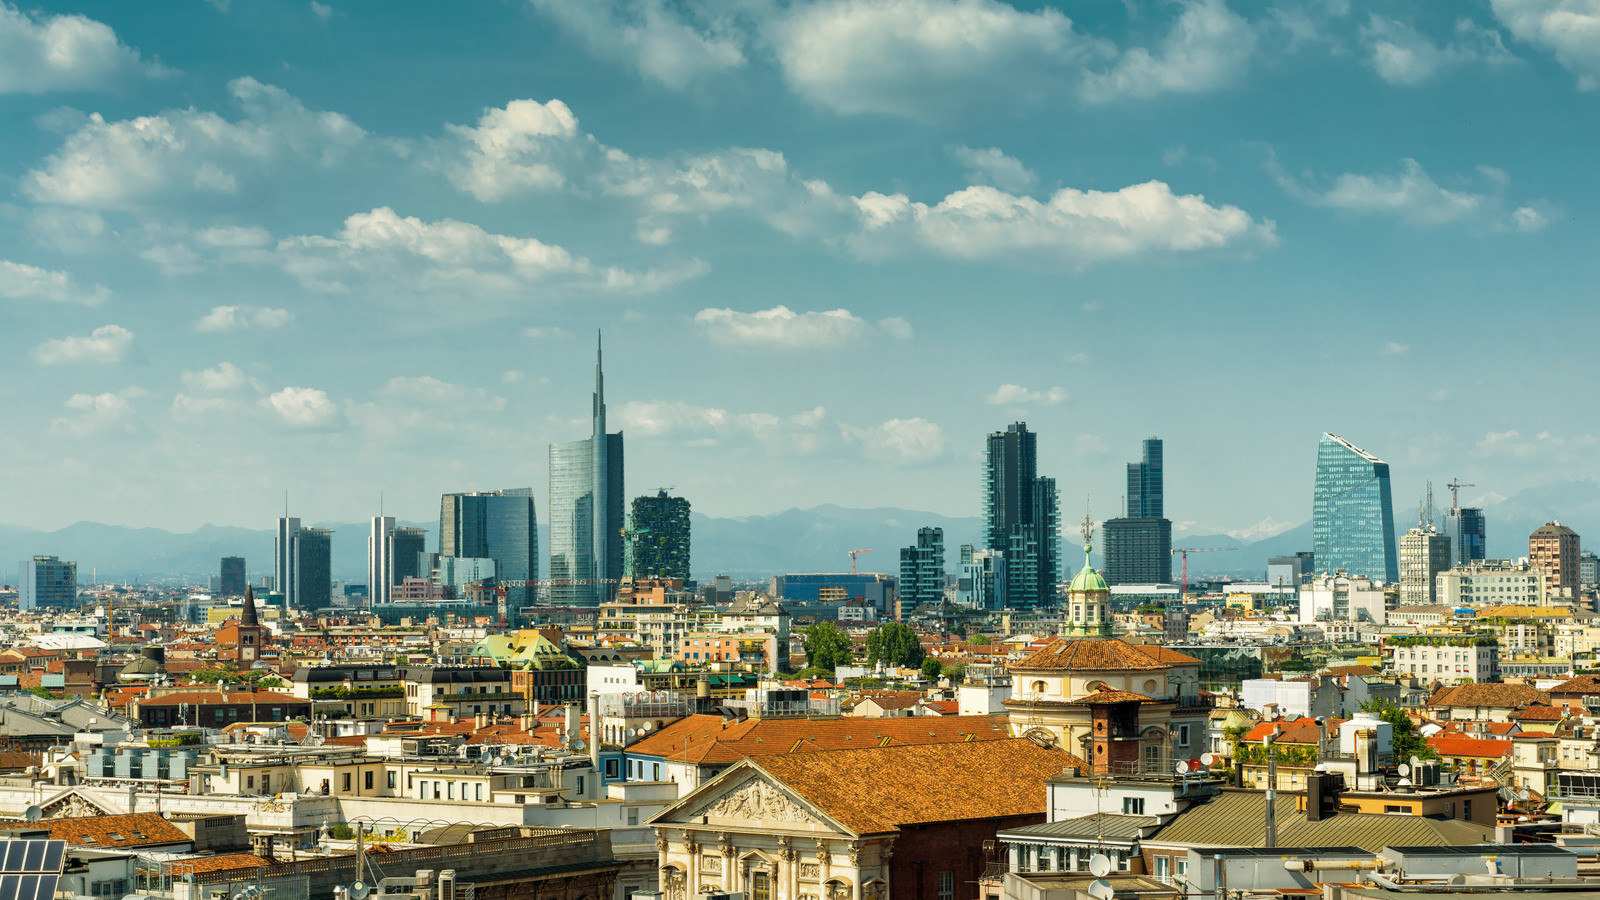 Canva - Milan skyline with modern skyscr